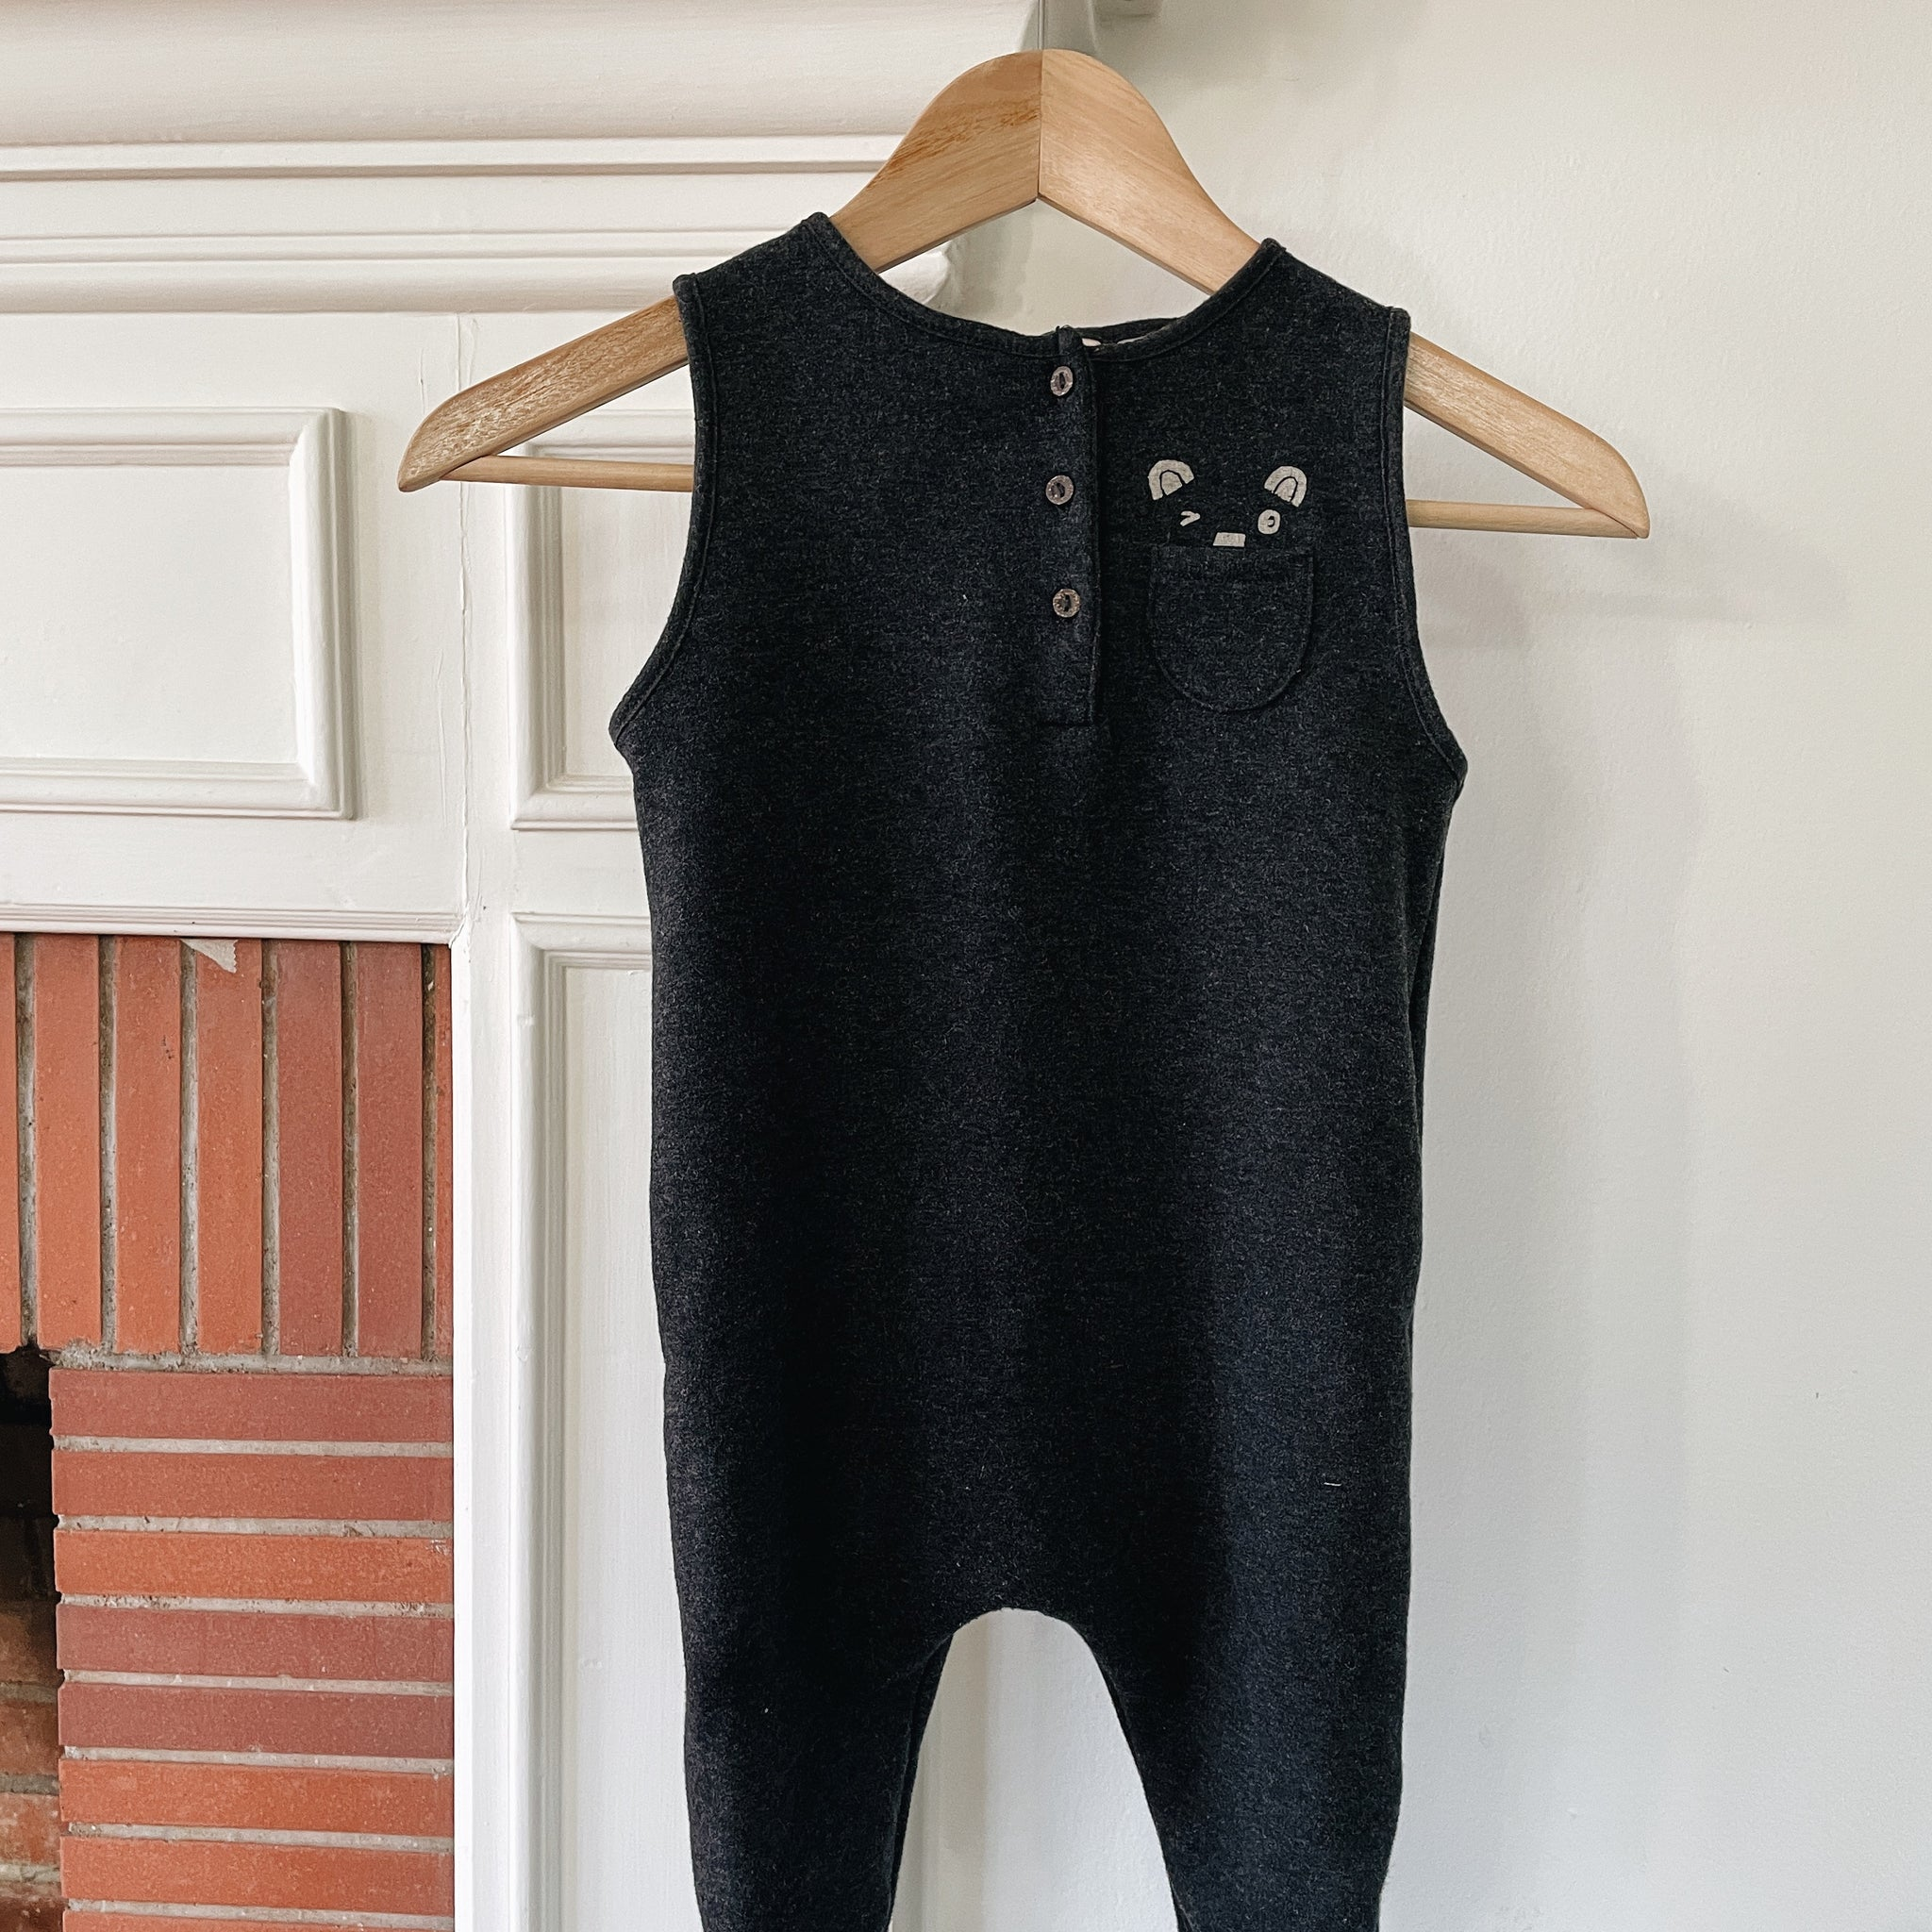 Black Romper Size 2/3 years